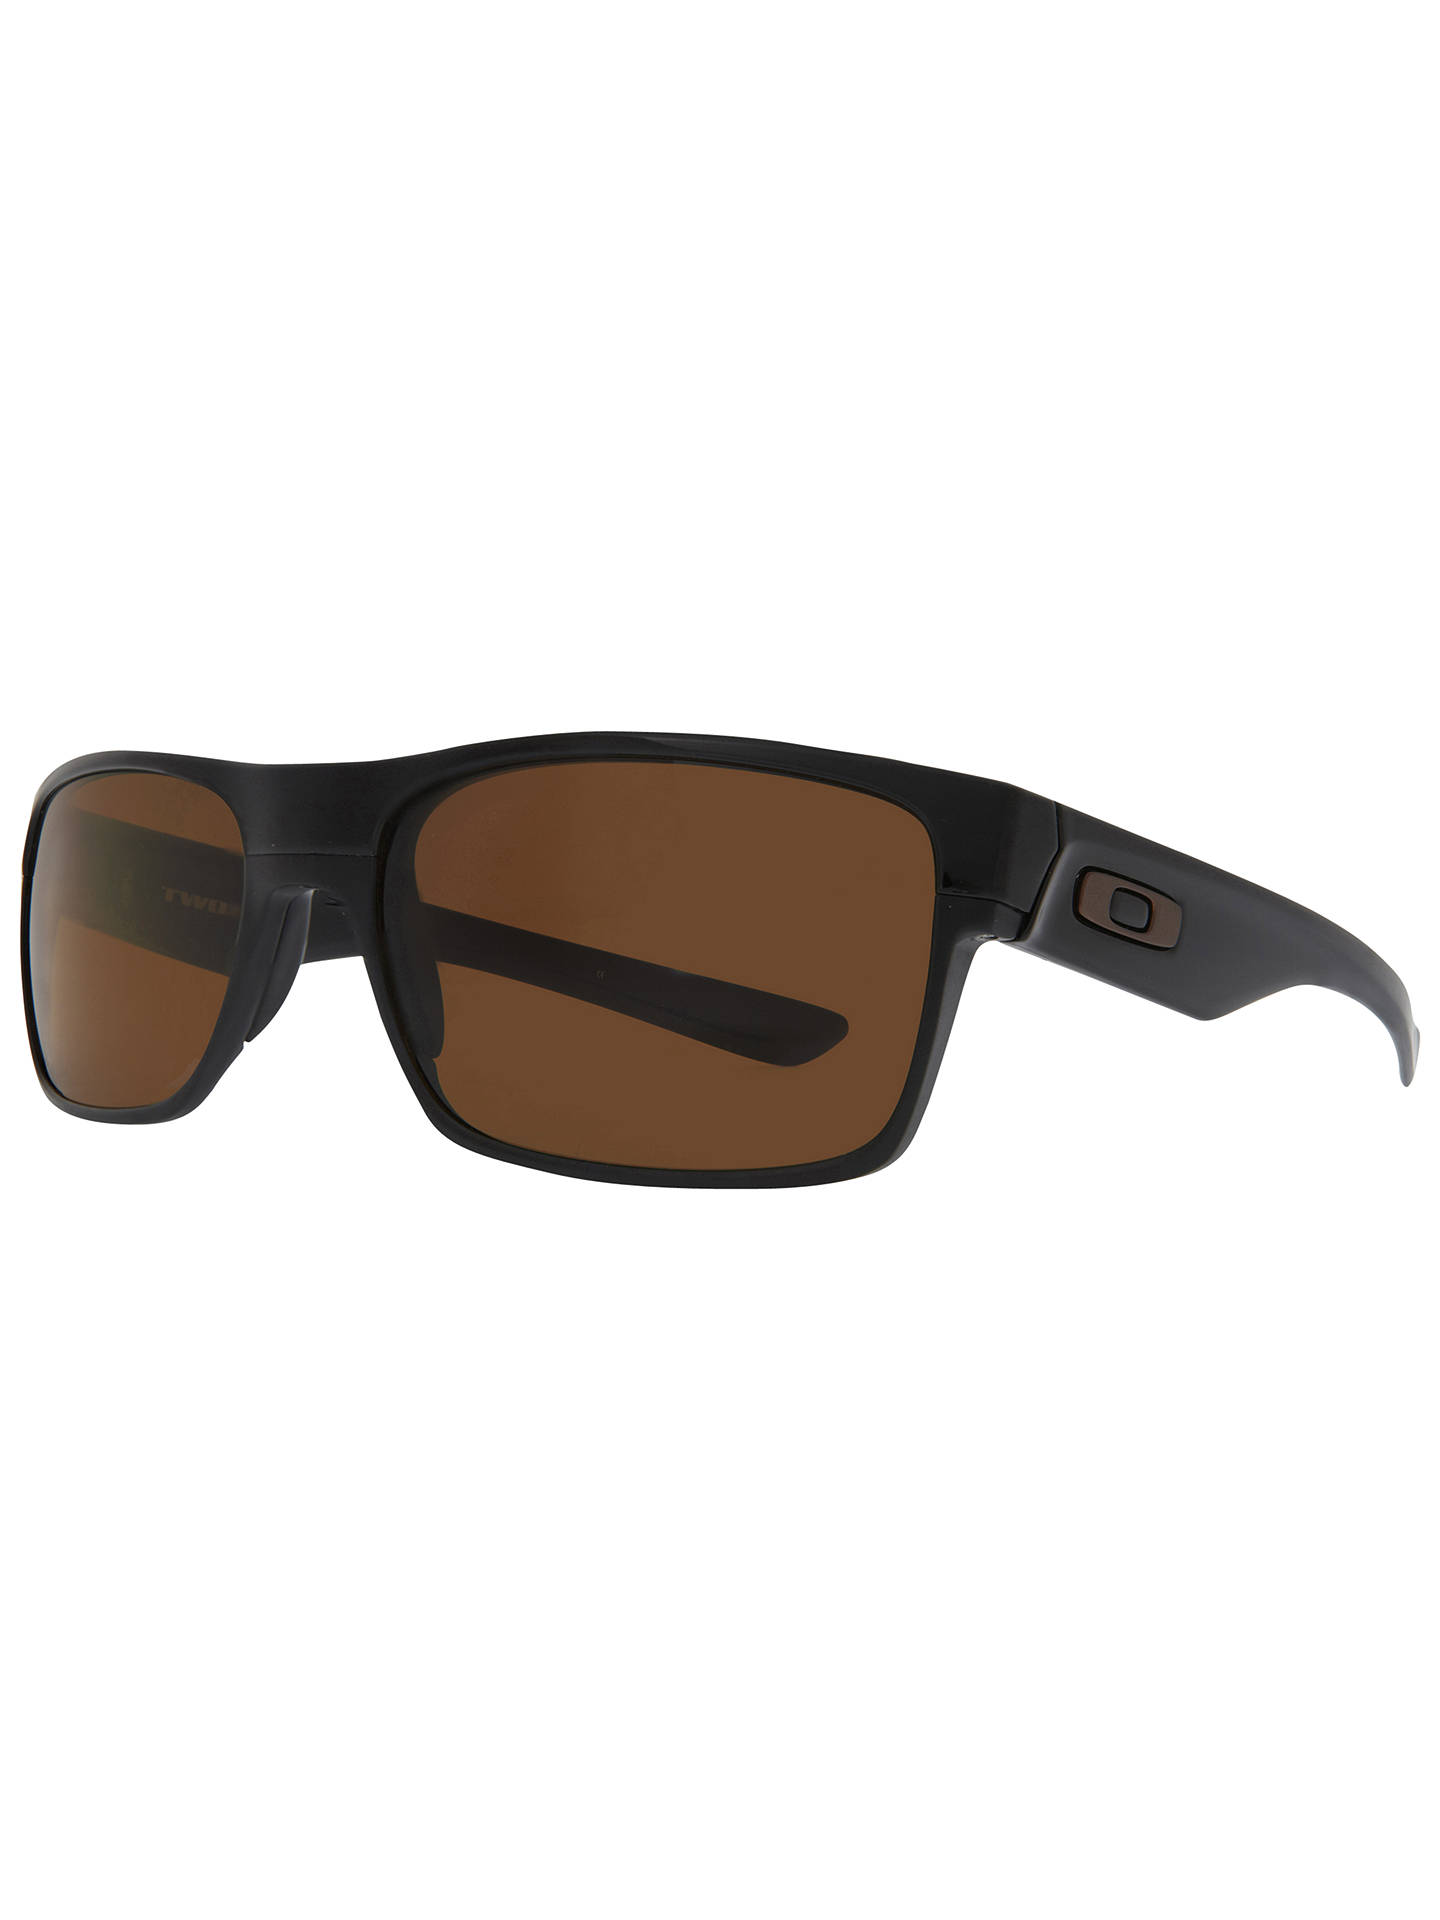 BuyOakley OO9189 Two Face Sunglasses, Black Online at johnlewis.com